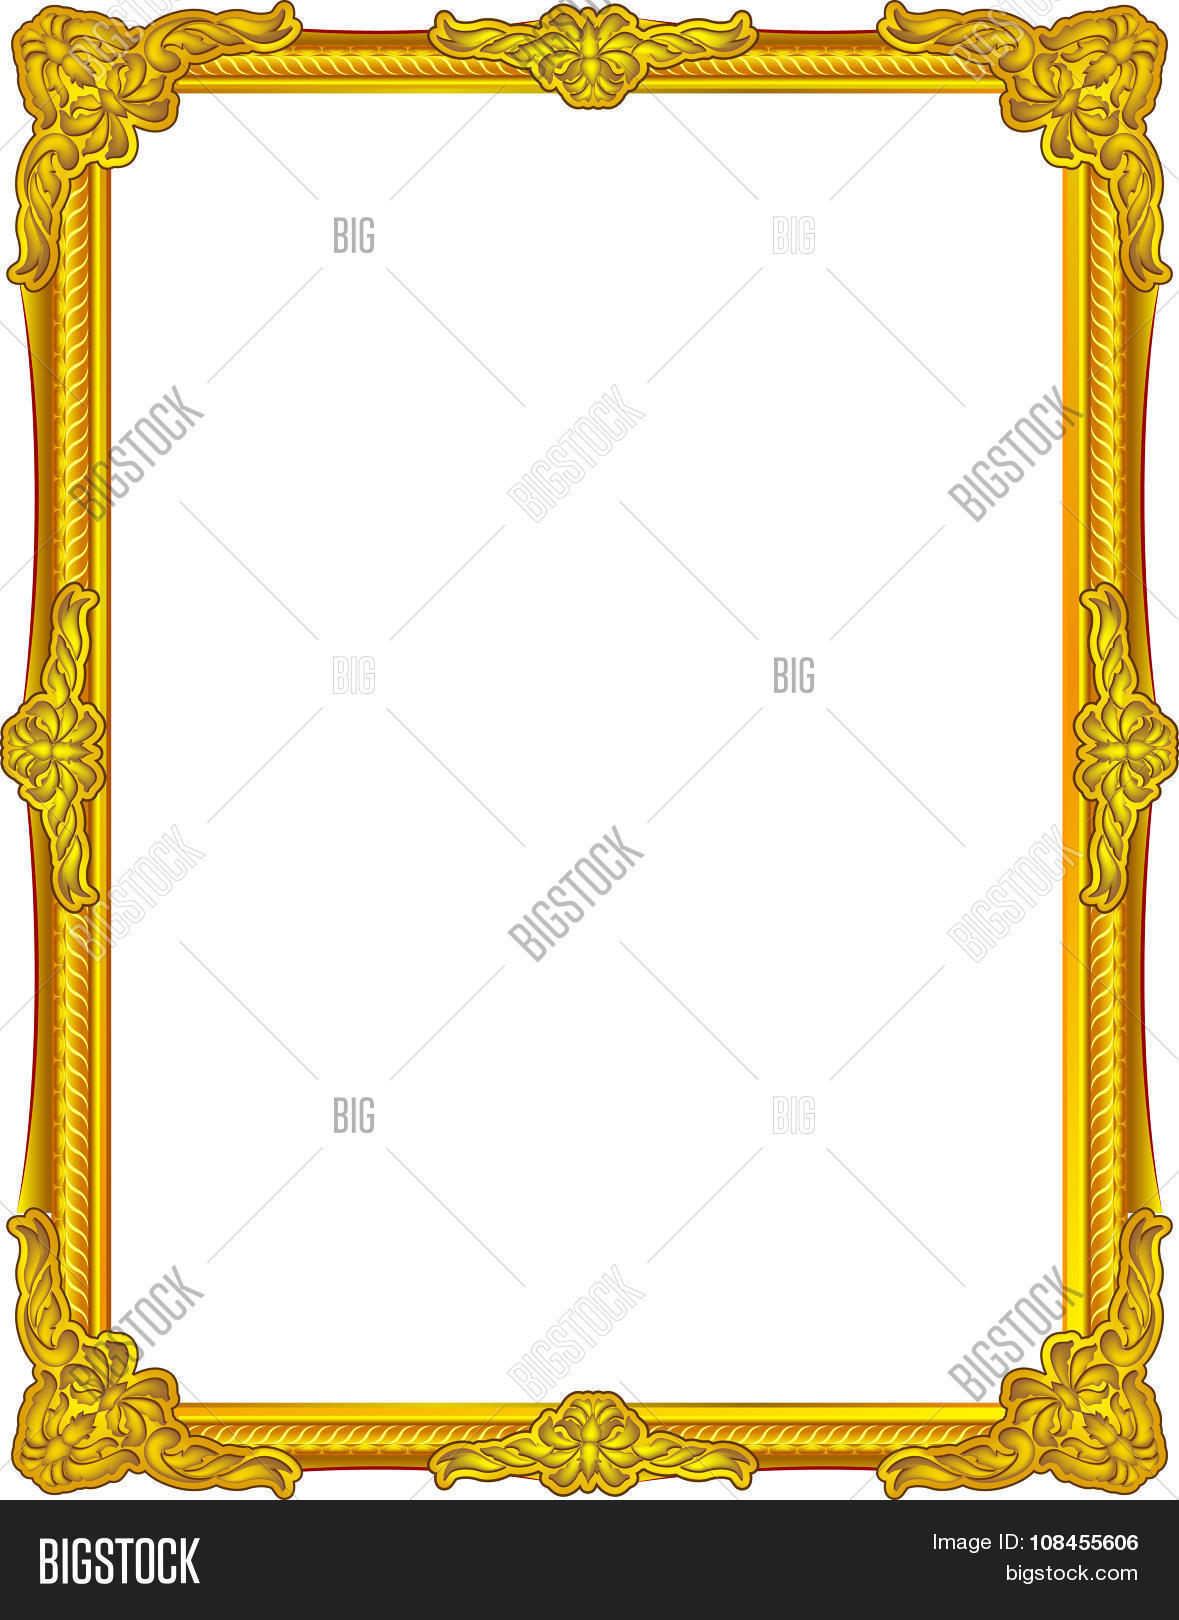 76eceb05b18 gold frame louis picture vector abstract design gold frame color